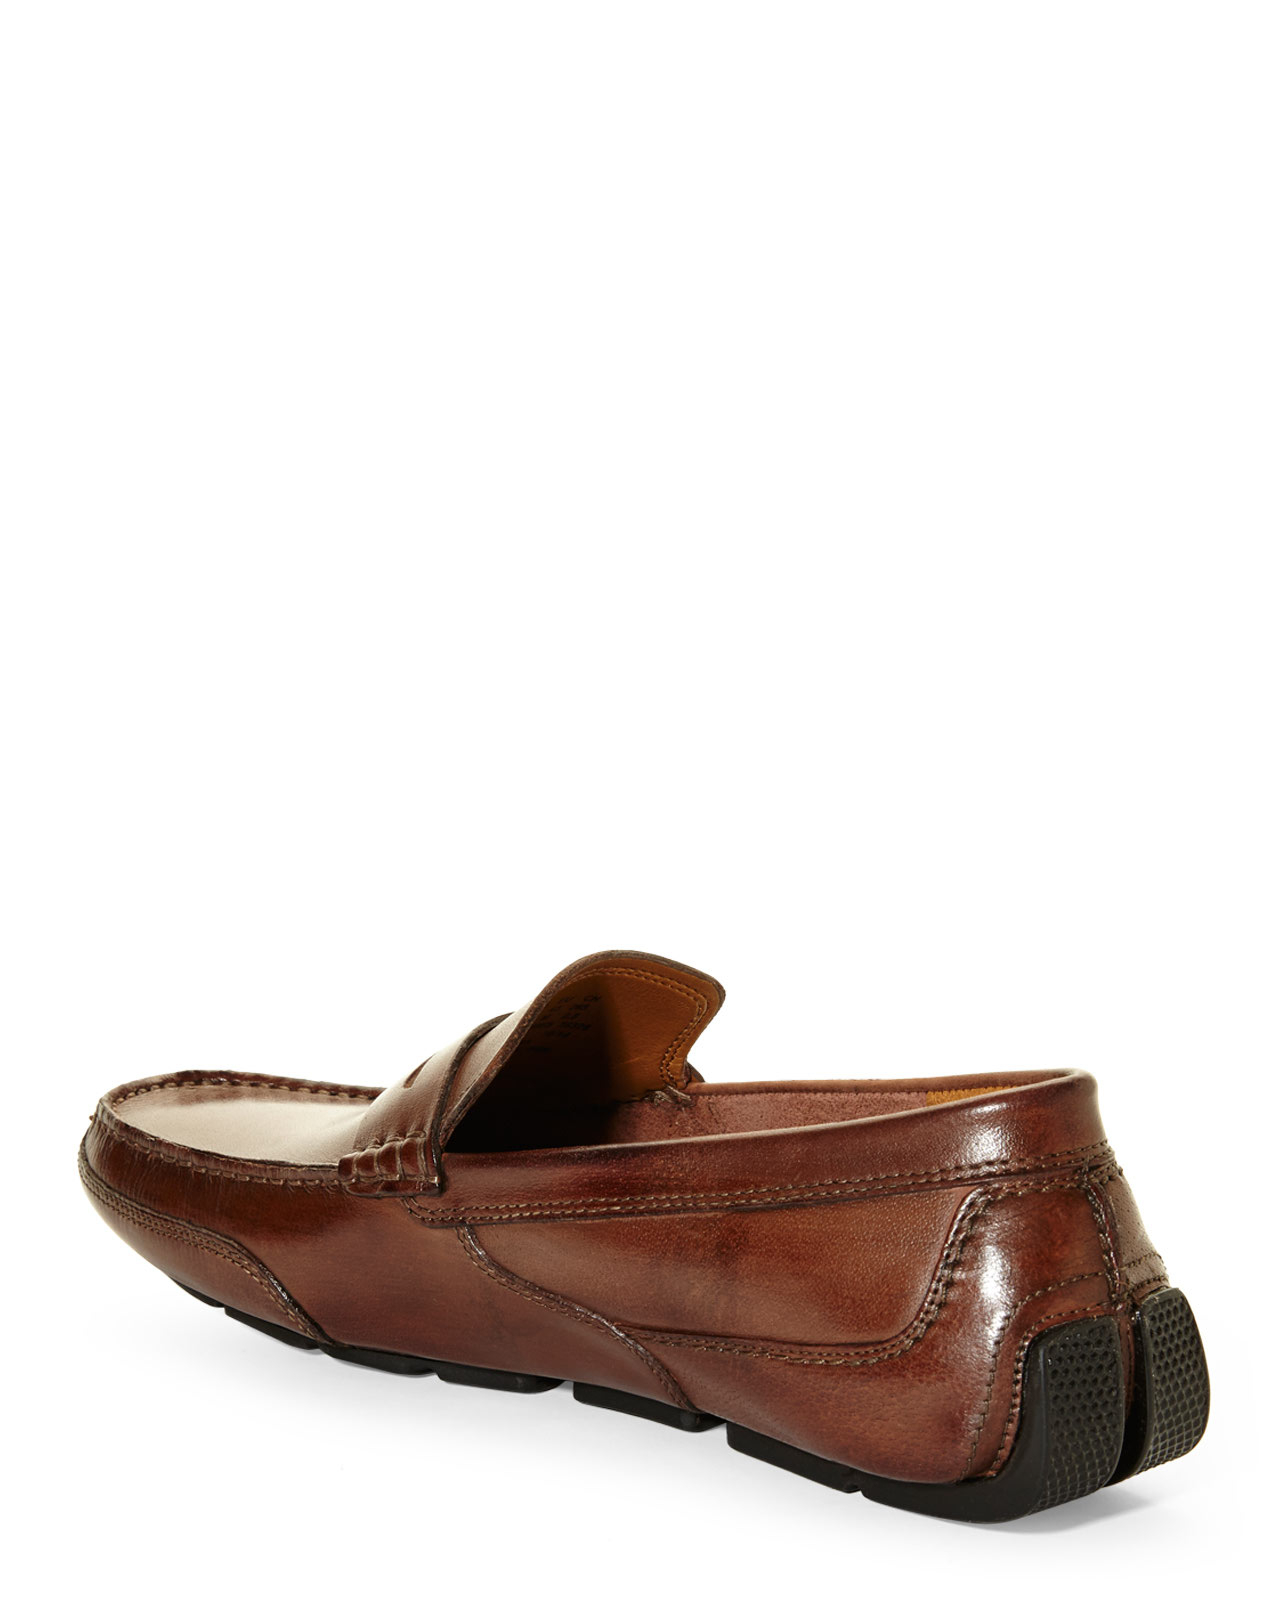 263b3355abc Lyst - Clarks Ashmont Way Penny Loafers in Brown for Men